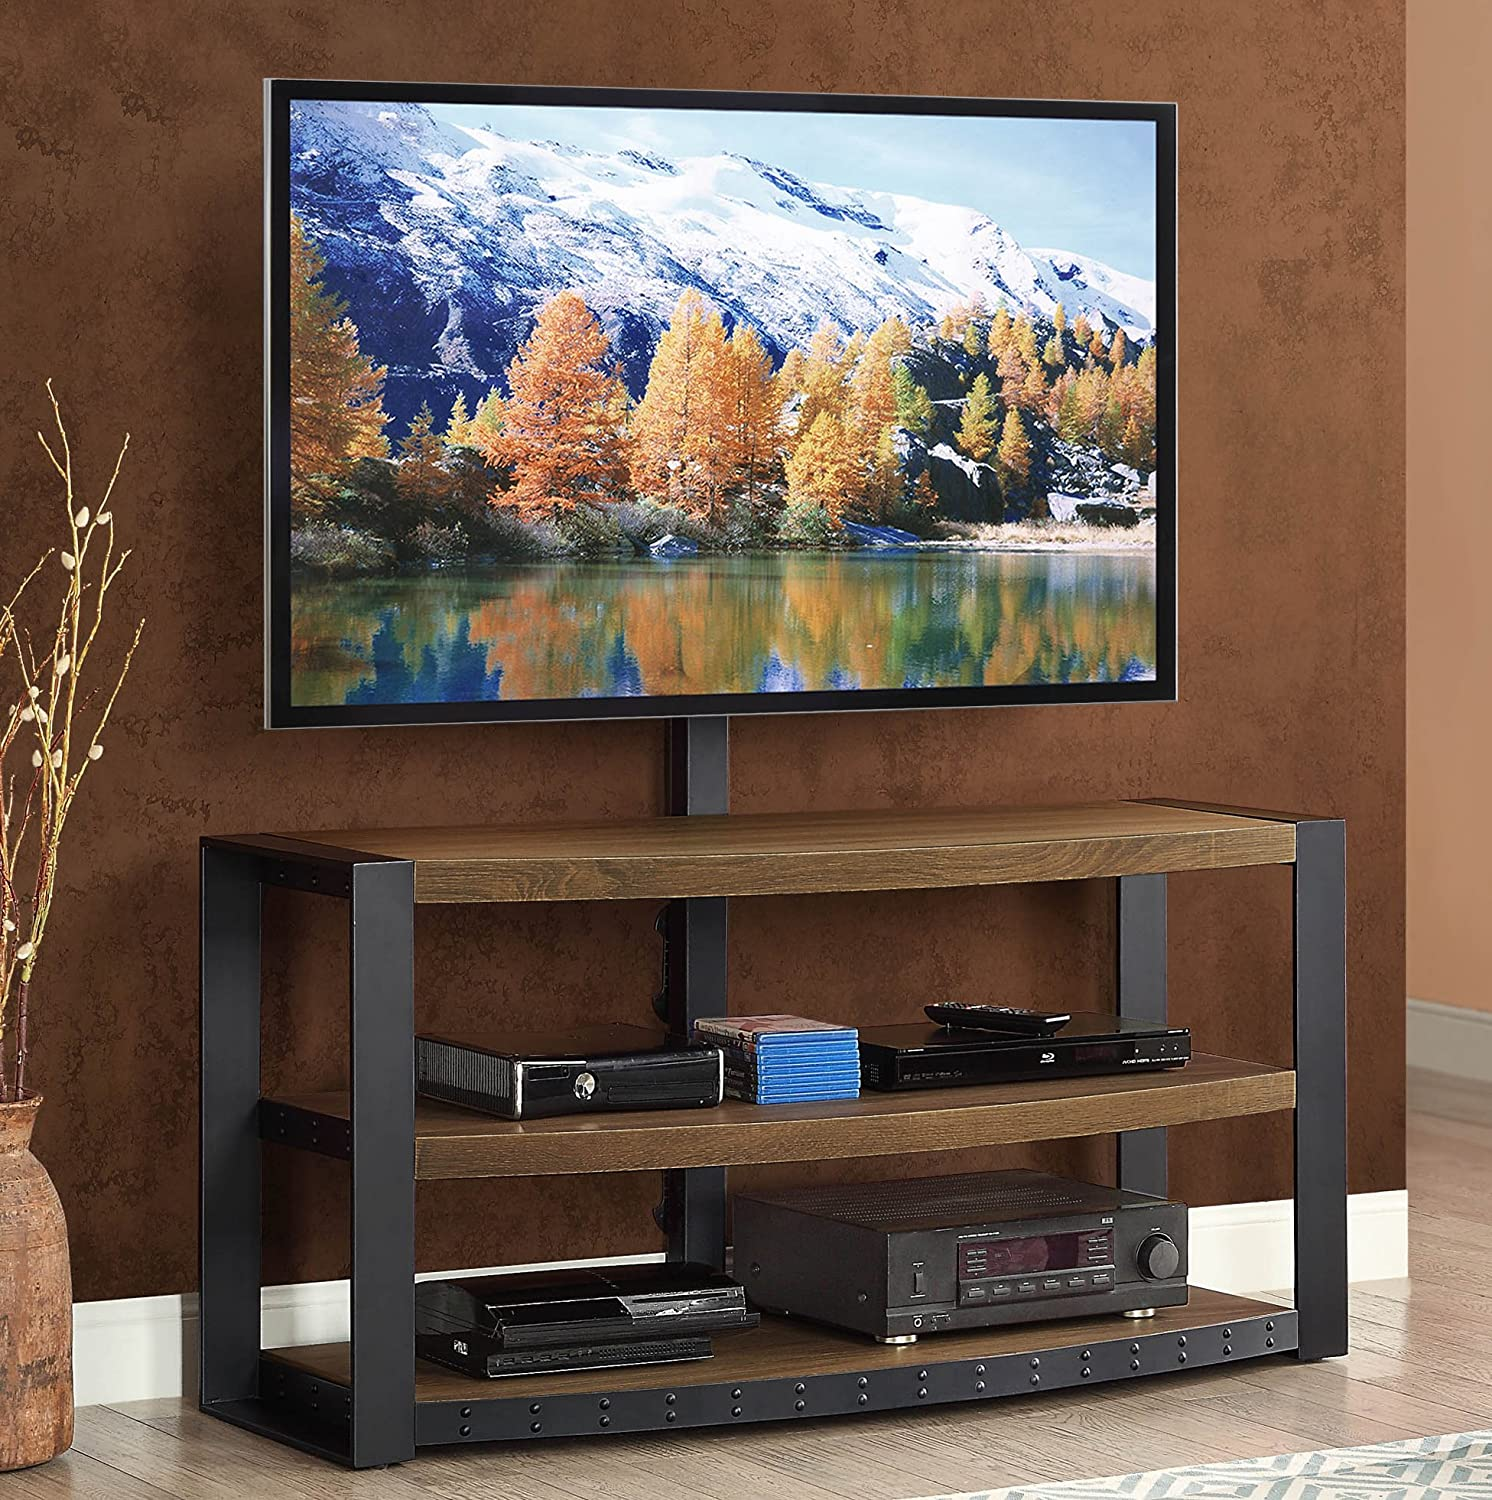 Superb Amazon.com: Whalen Furniture Santa Fe 3 In 1 TV Stand: Kitchen U0026 Dining